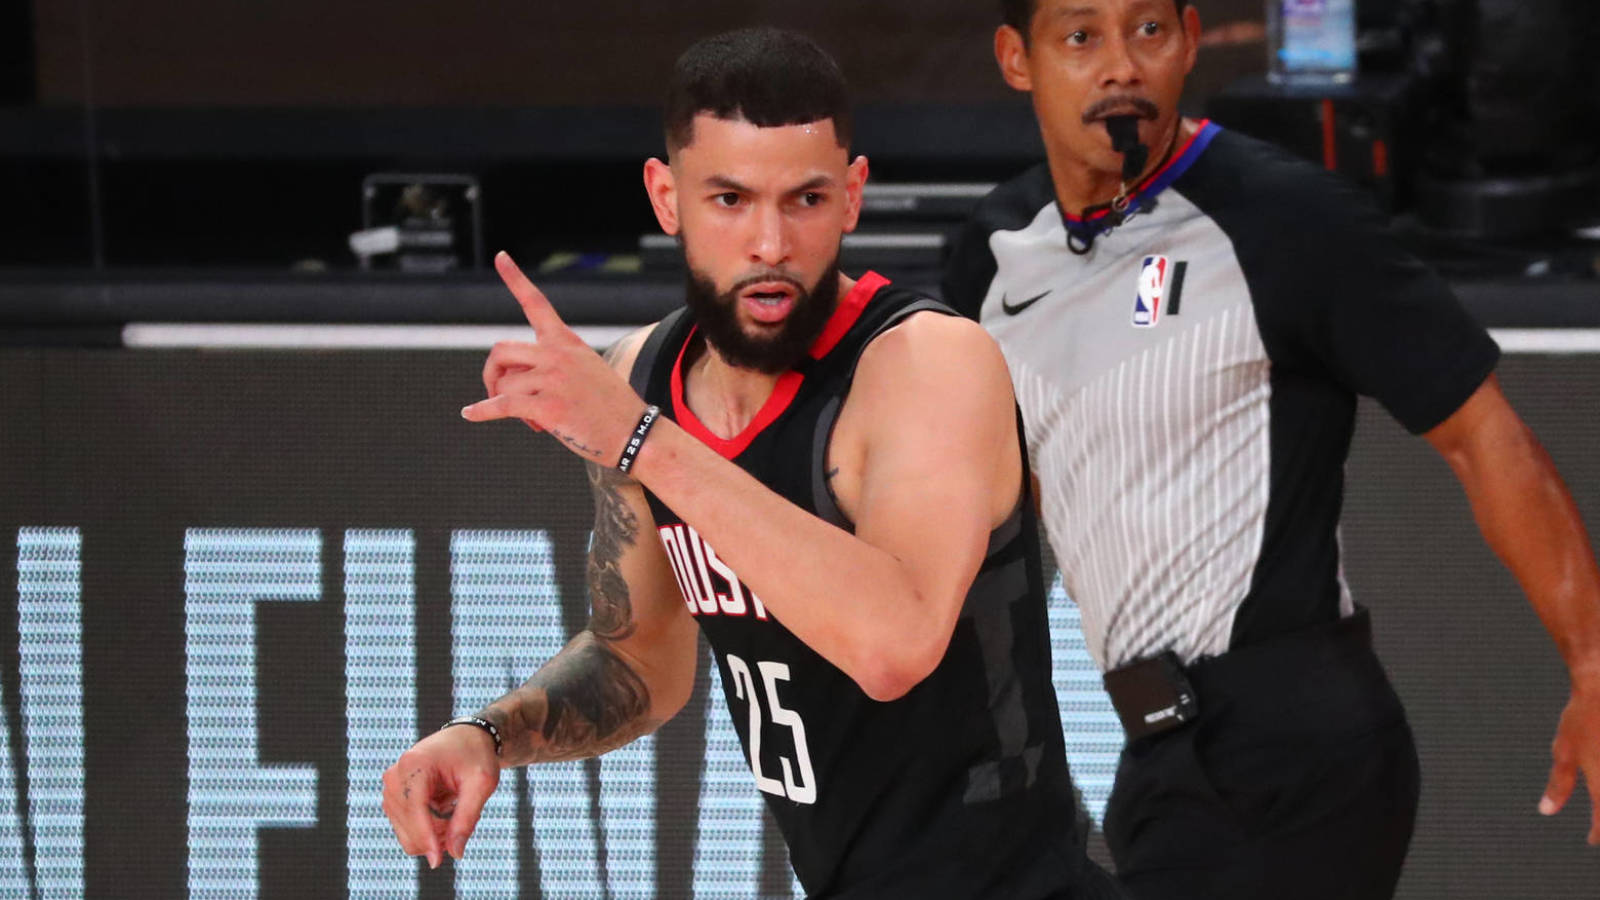 Sixers could possibly acquire Austin Rivers?